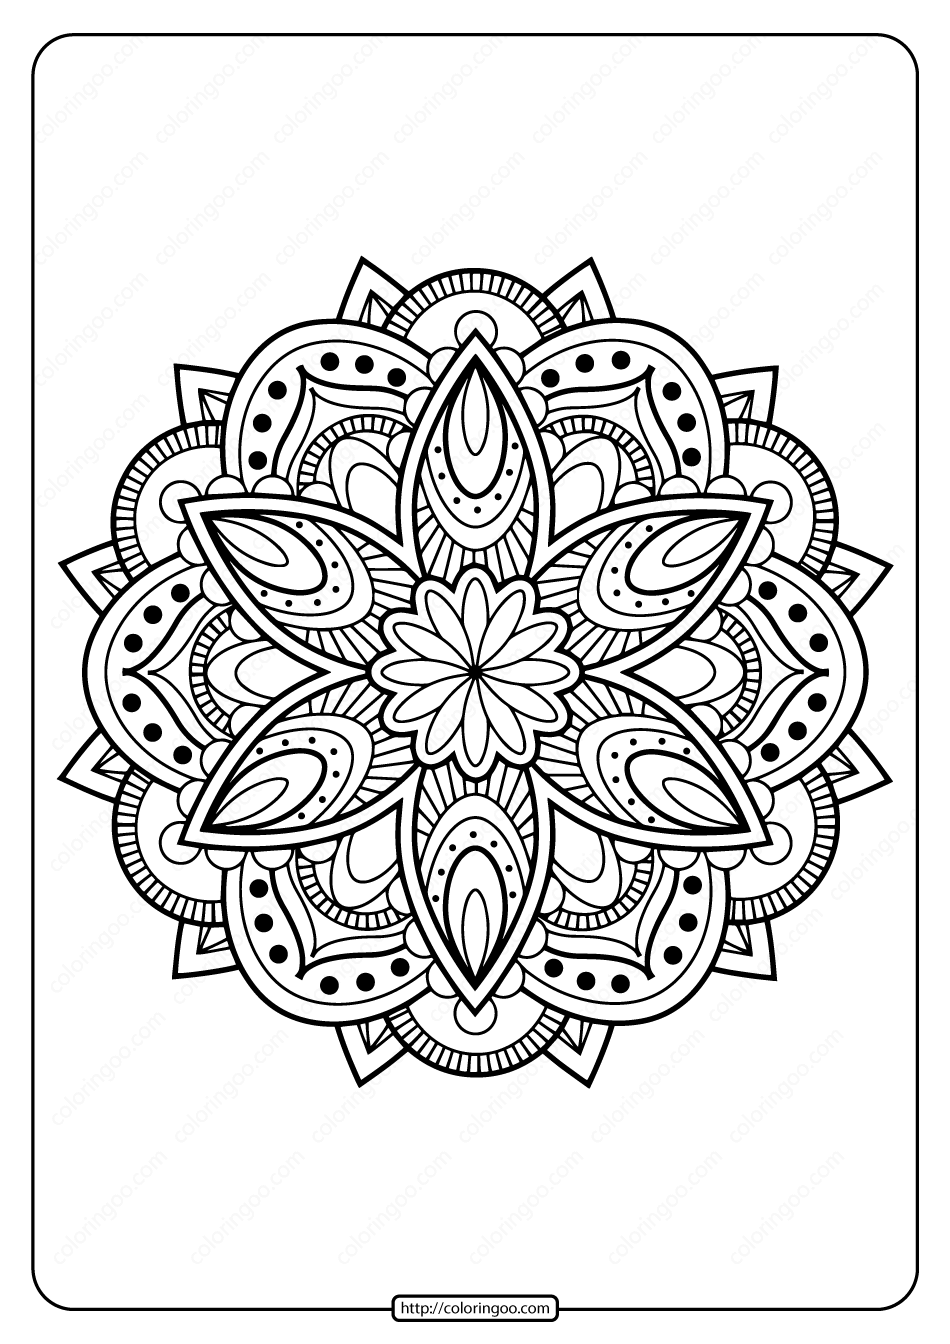 Printable PDF Coloring Book Pages for Adults 022